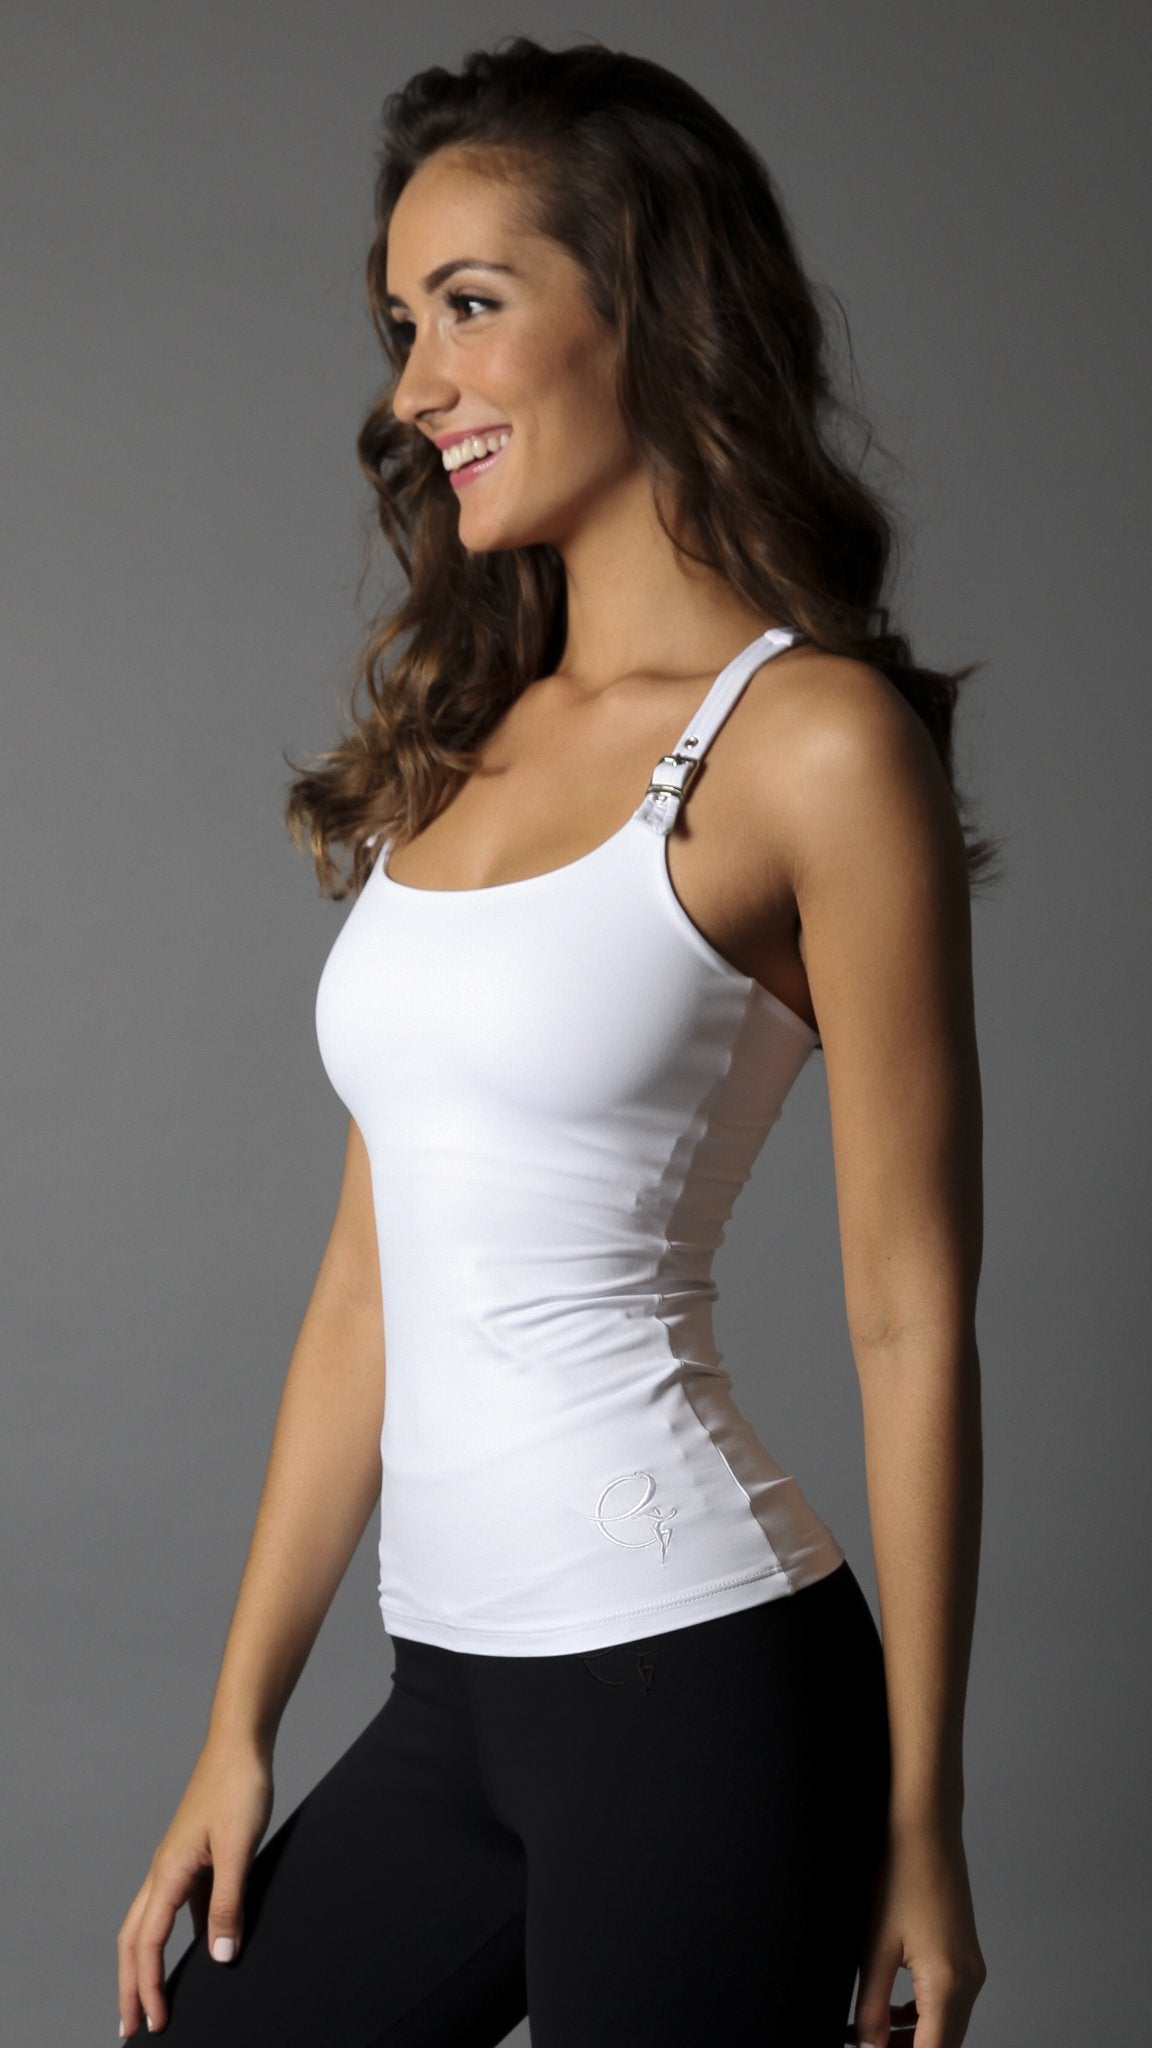 Buckle Strap Long Top LT128 White - Equilibrium Activewear